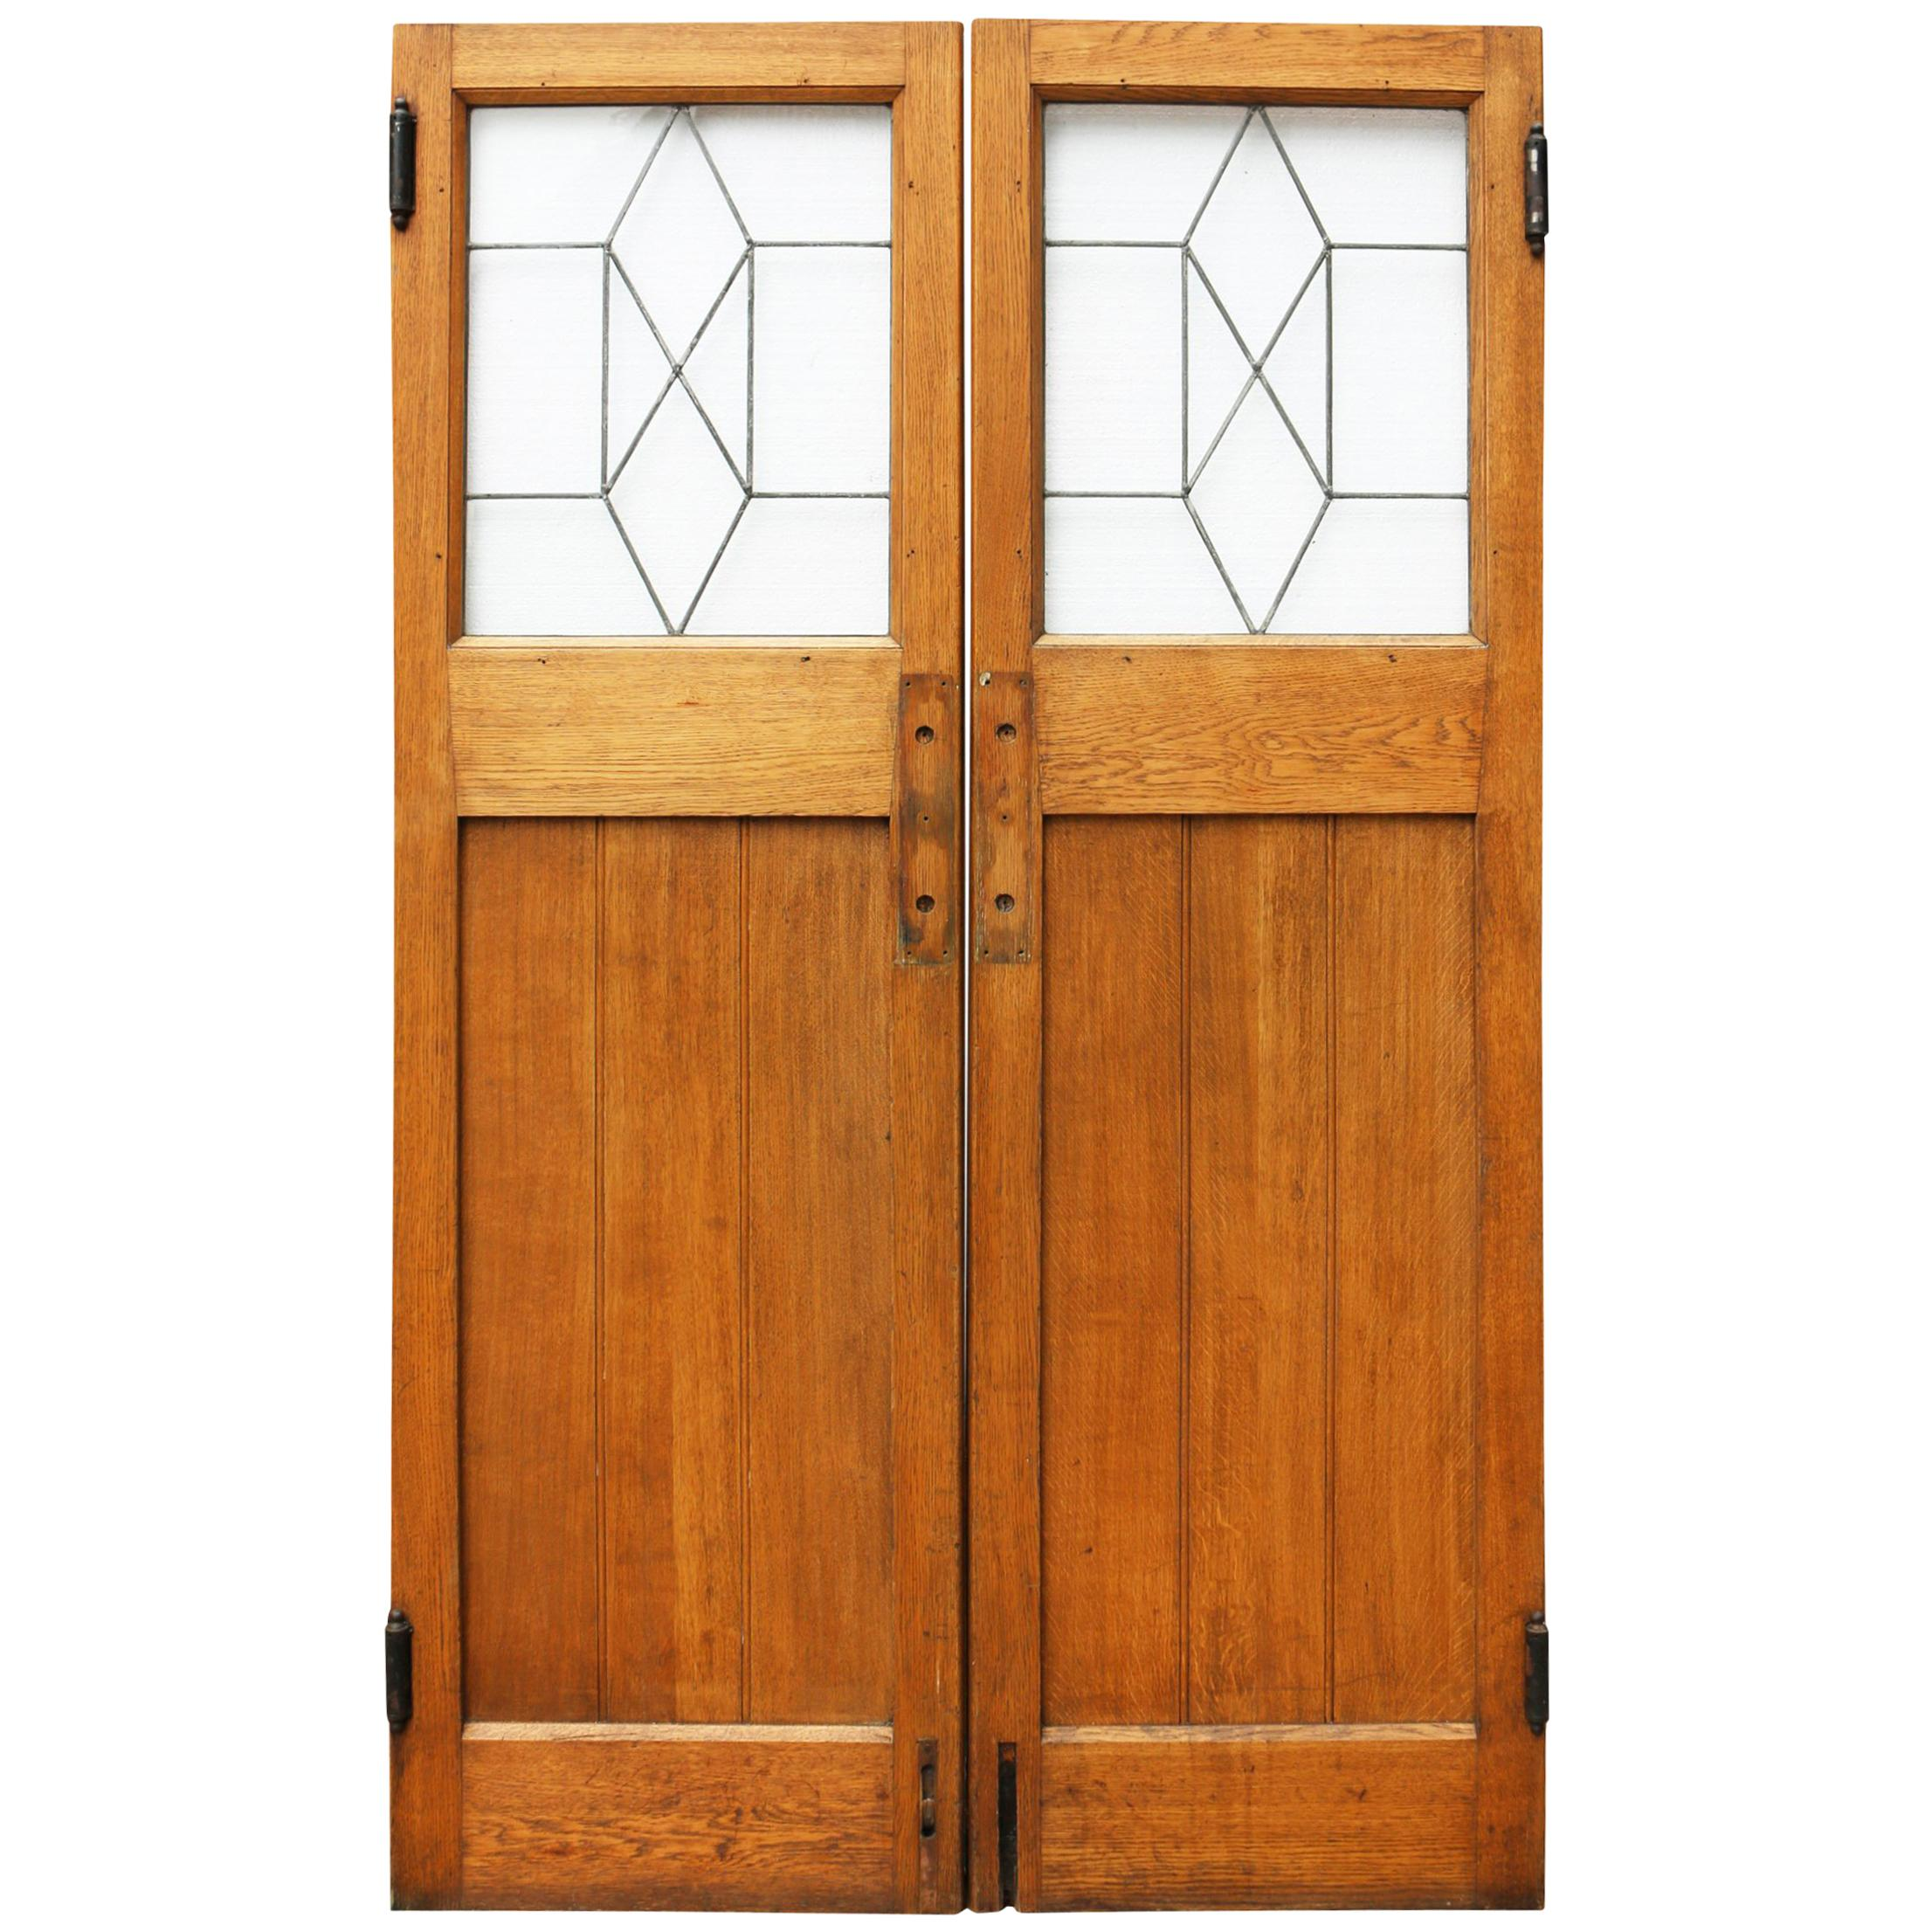 Etonnant Pair Of 1930s Oak Interior Swing Doors With Leaded Glass For Sale